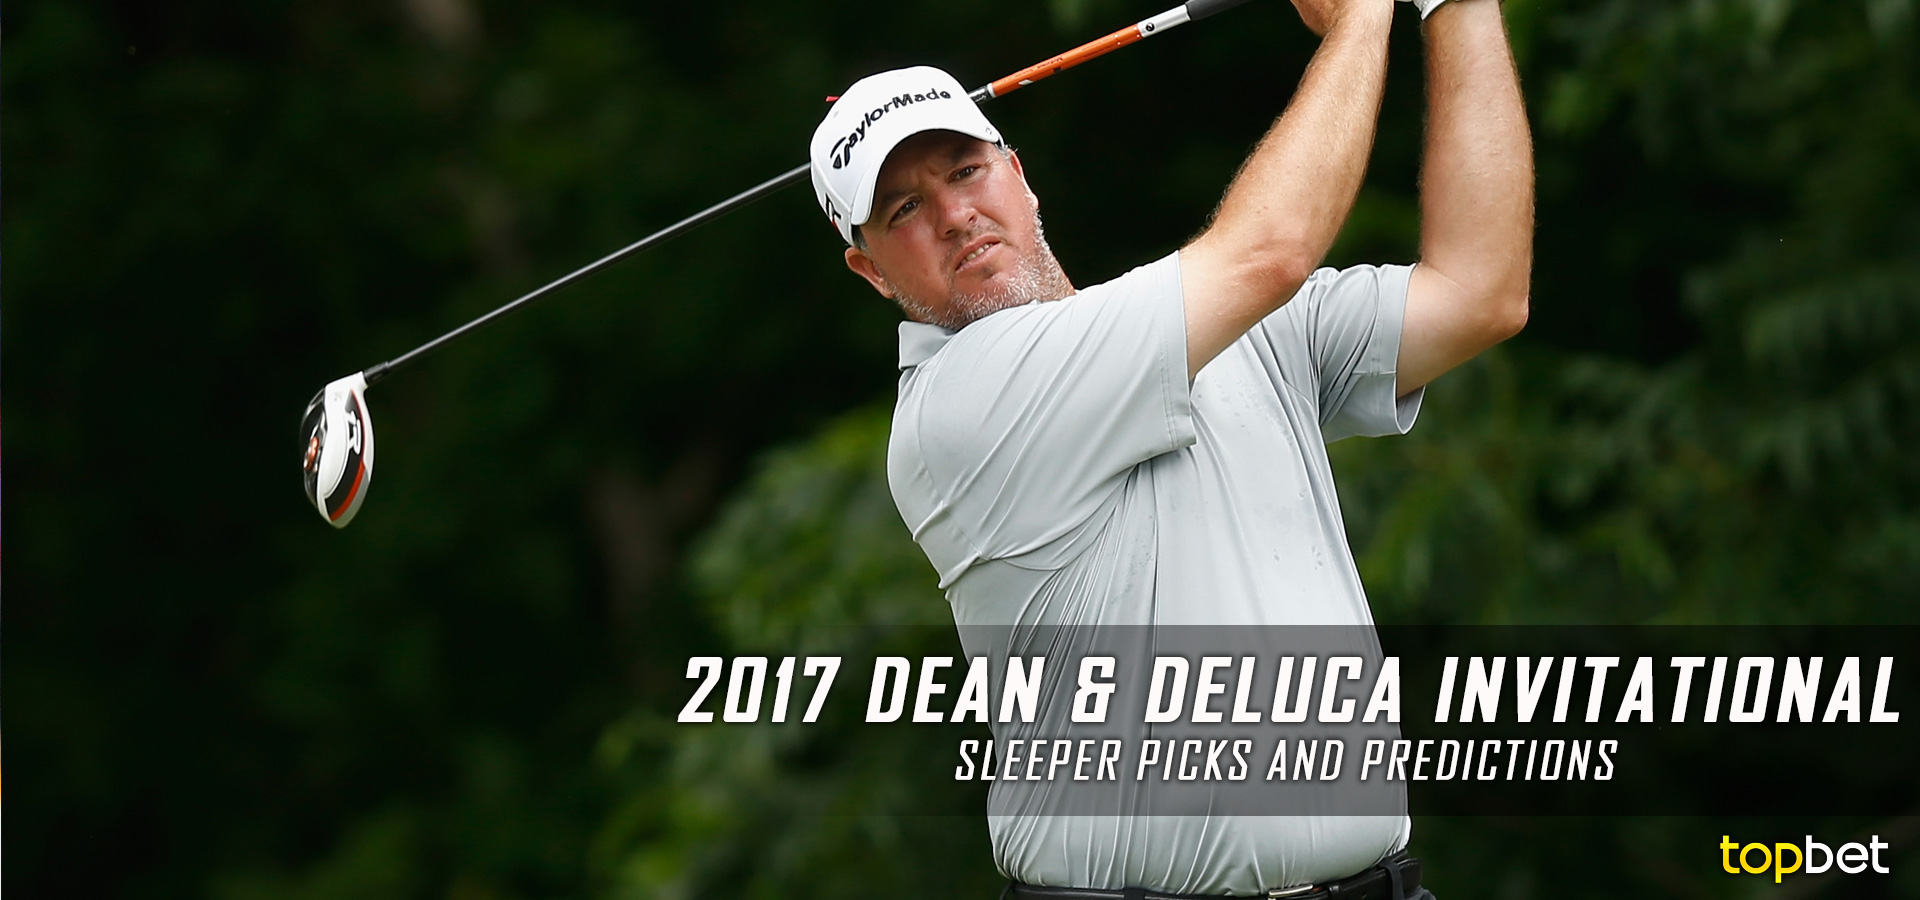 2017 Dean & DeLuca Invitational Sleeper Picks, Predictions, Odds, and PGA Golf Betting Preview